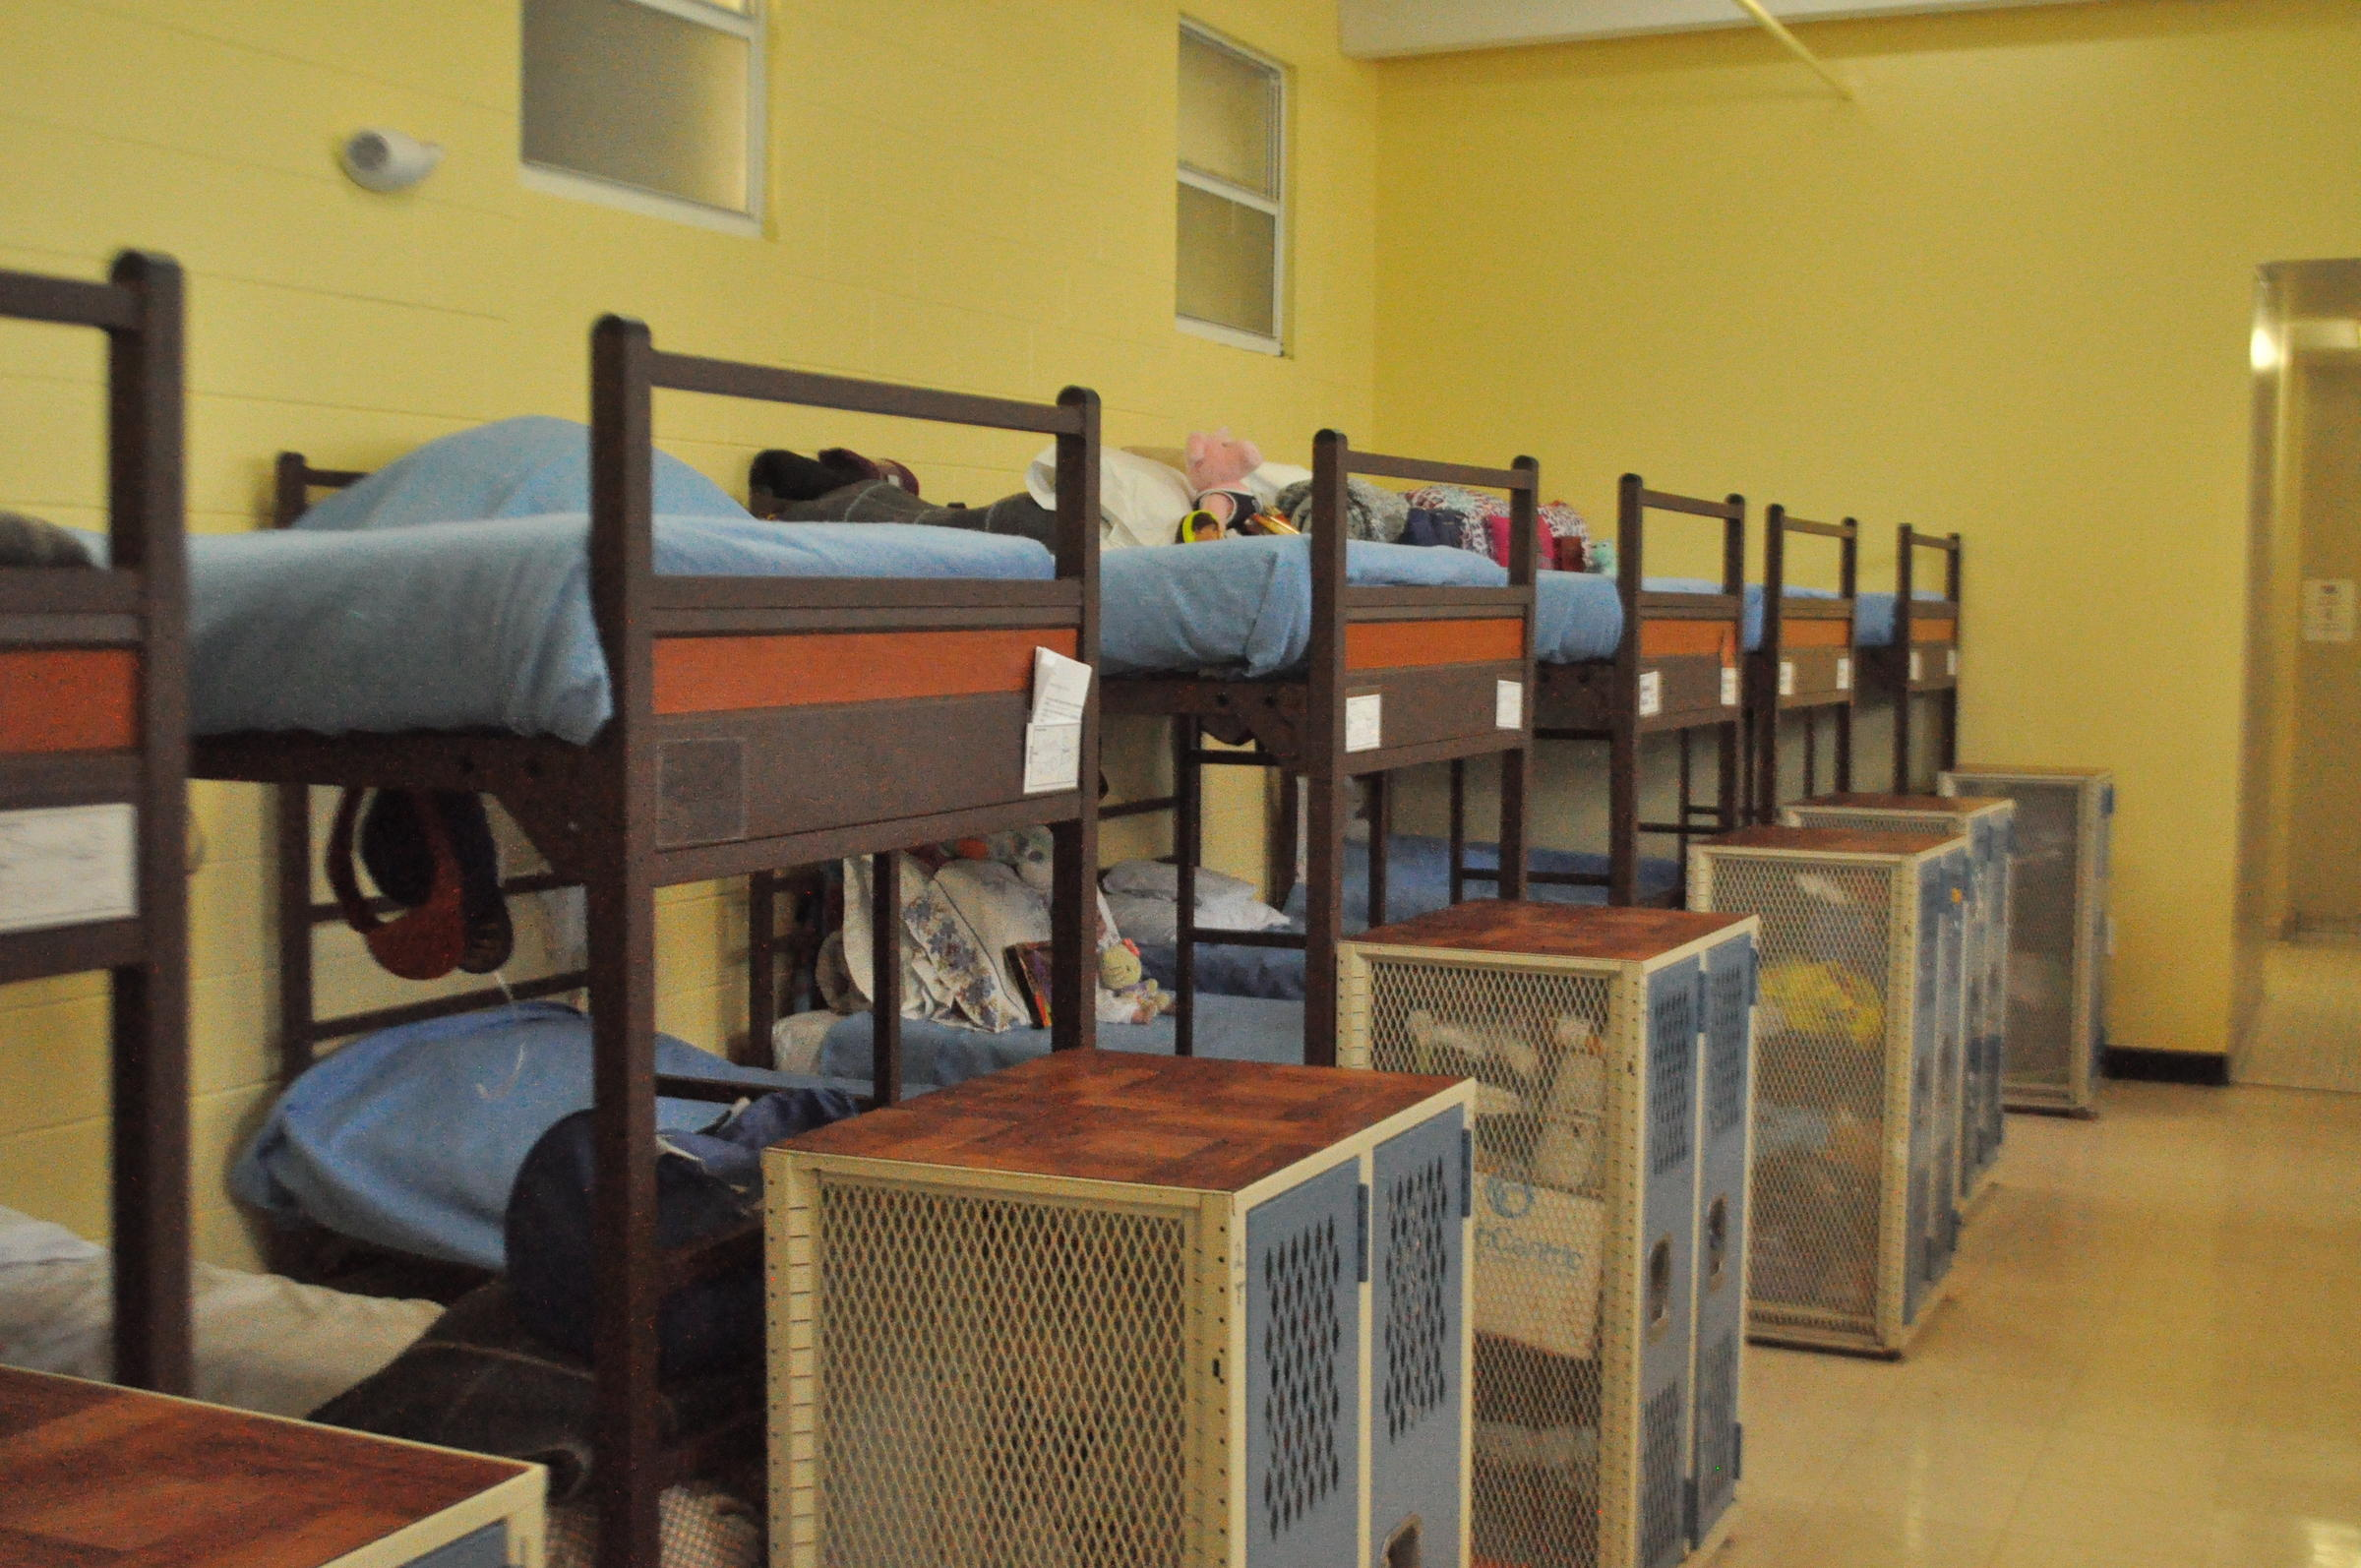 Miami Homeless Shelter 39infested39 With Bed Bugs Wgcu News